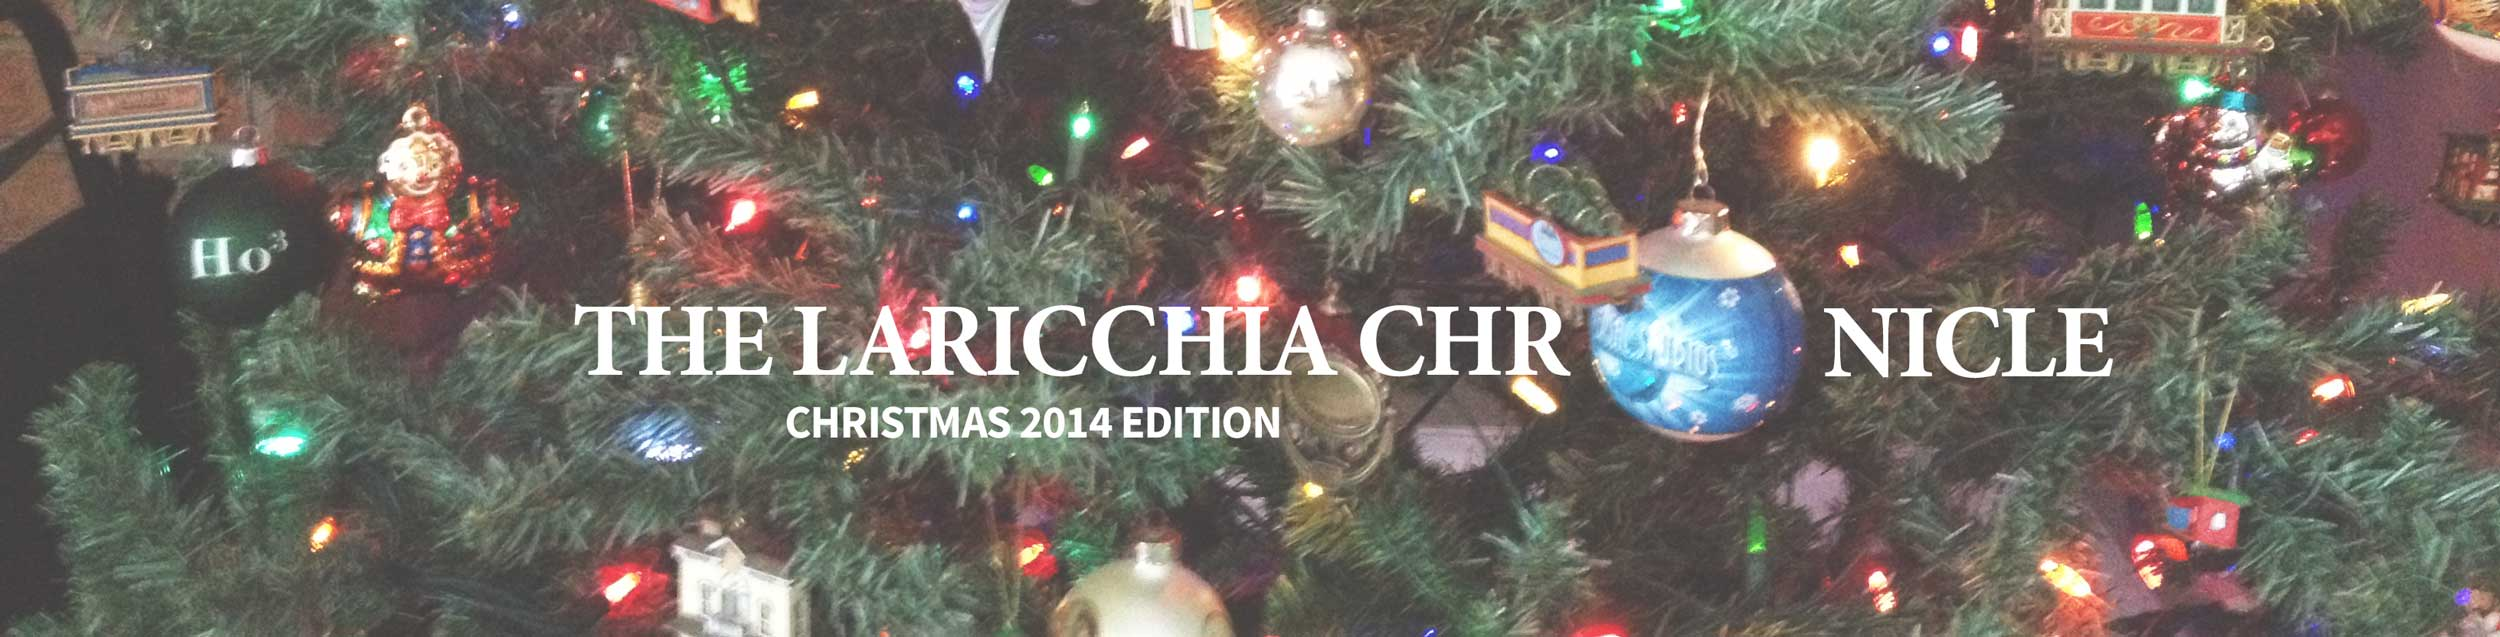 christmas-newsletter-header-2014